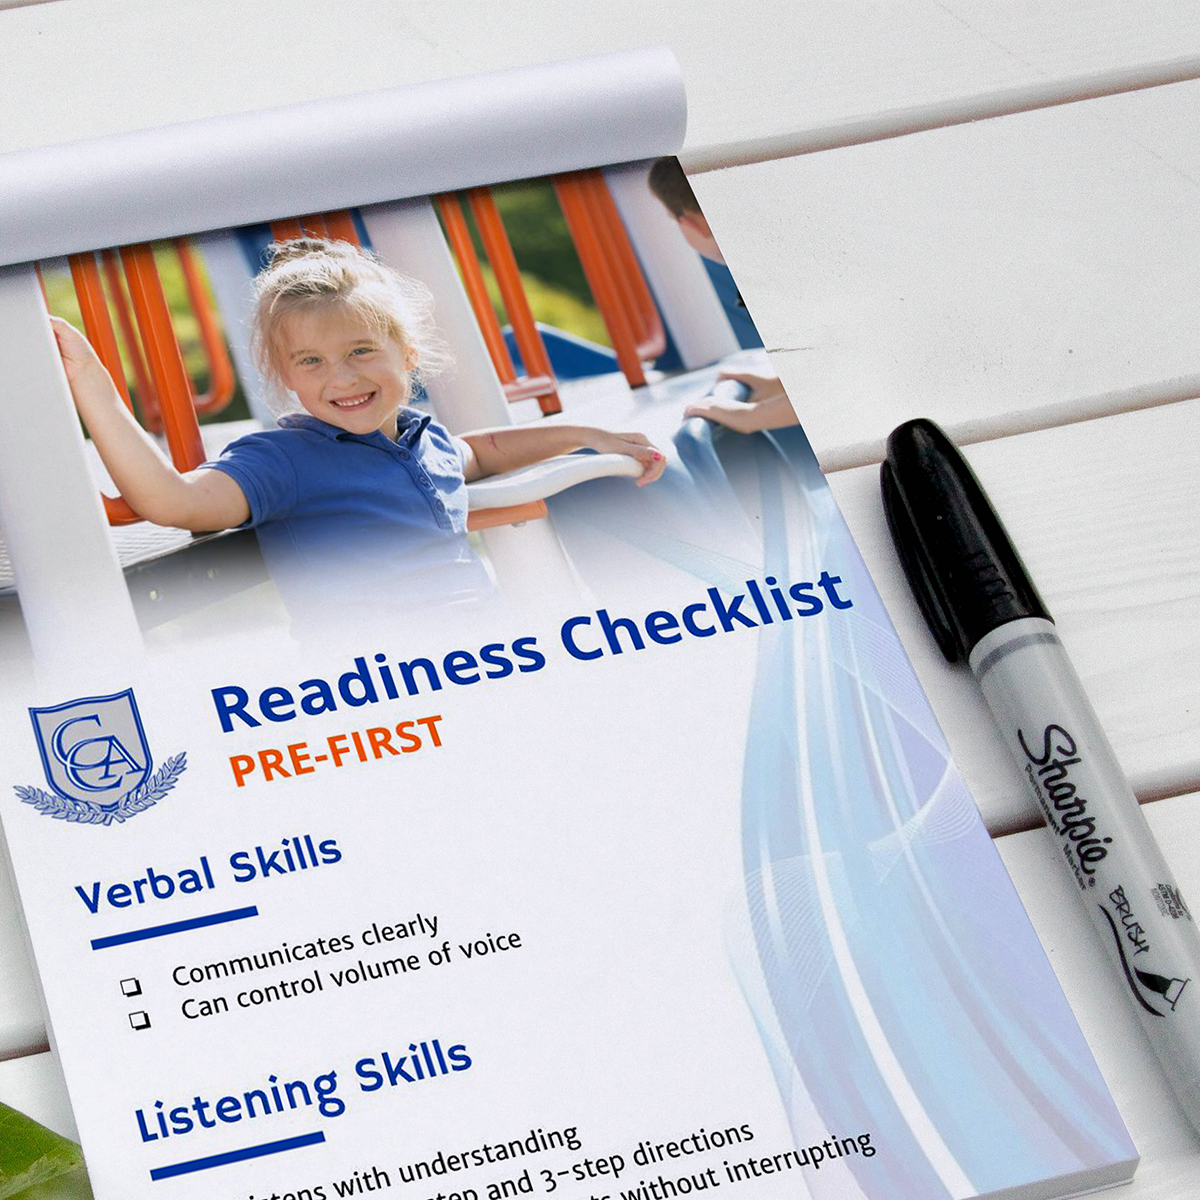 Readiness Checklist Form.png